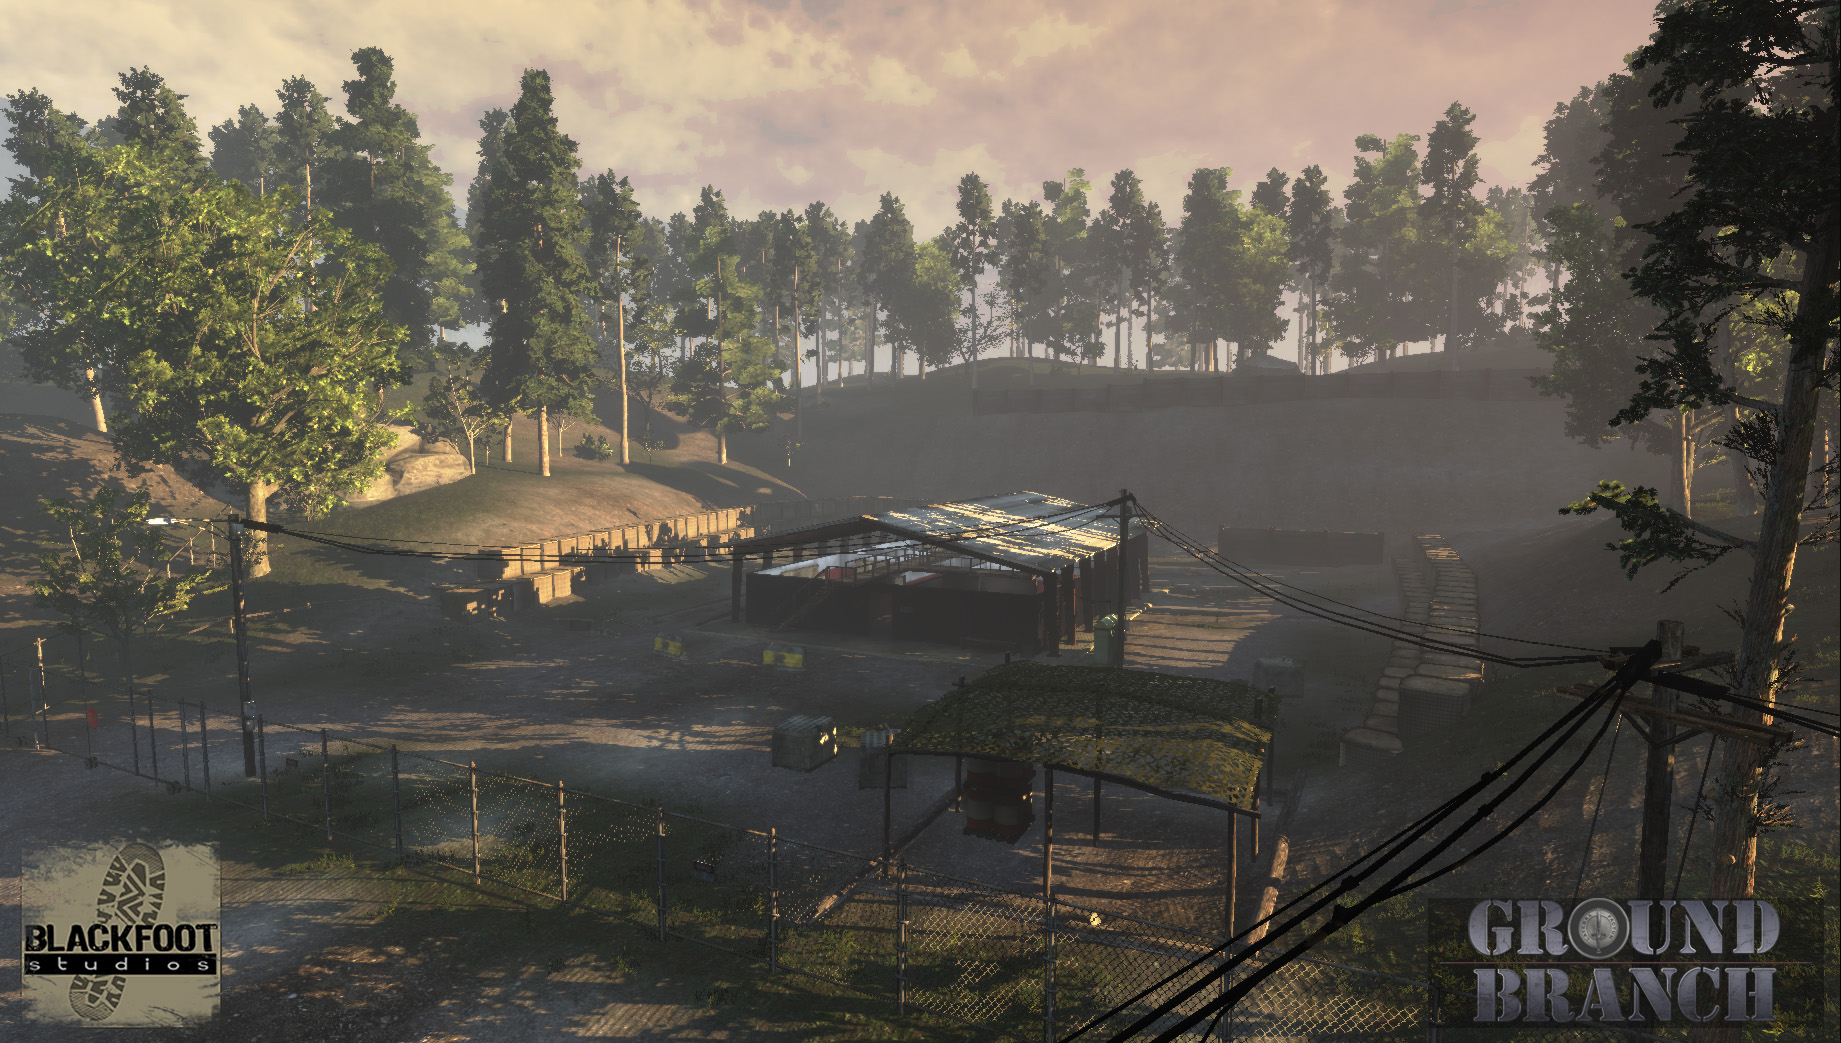 Killhouse image - Ground Branch - Indie DB